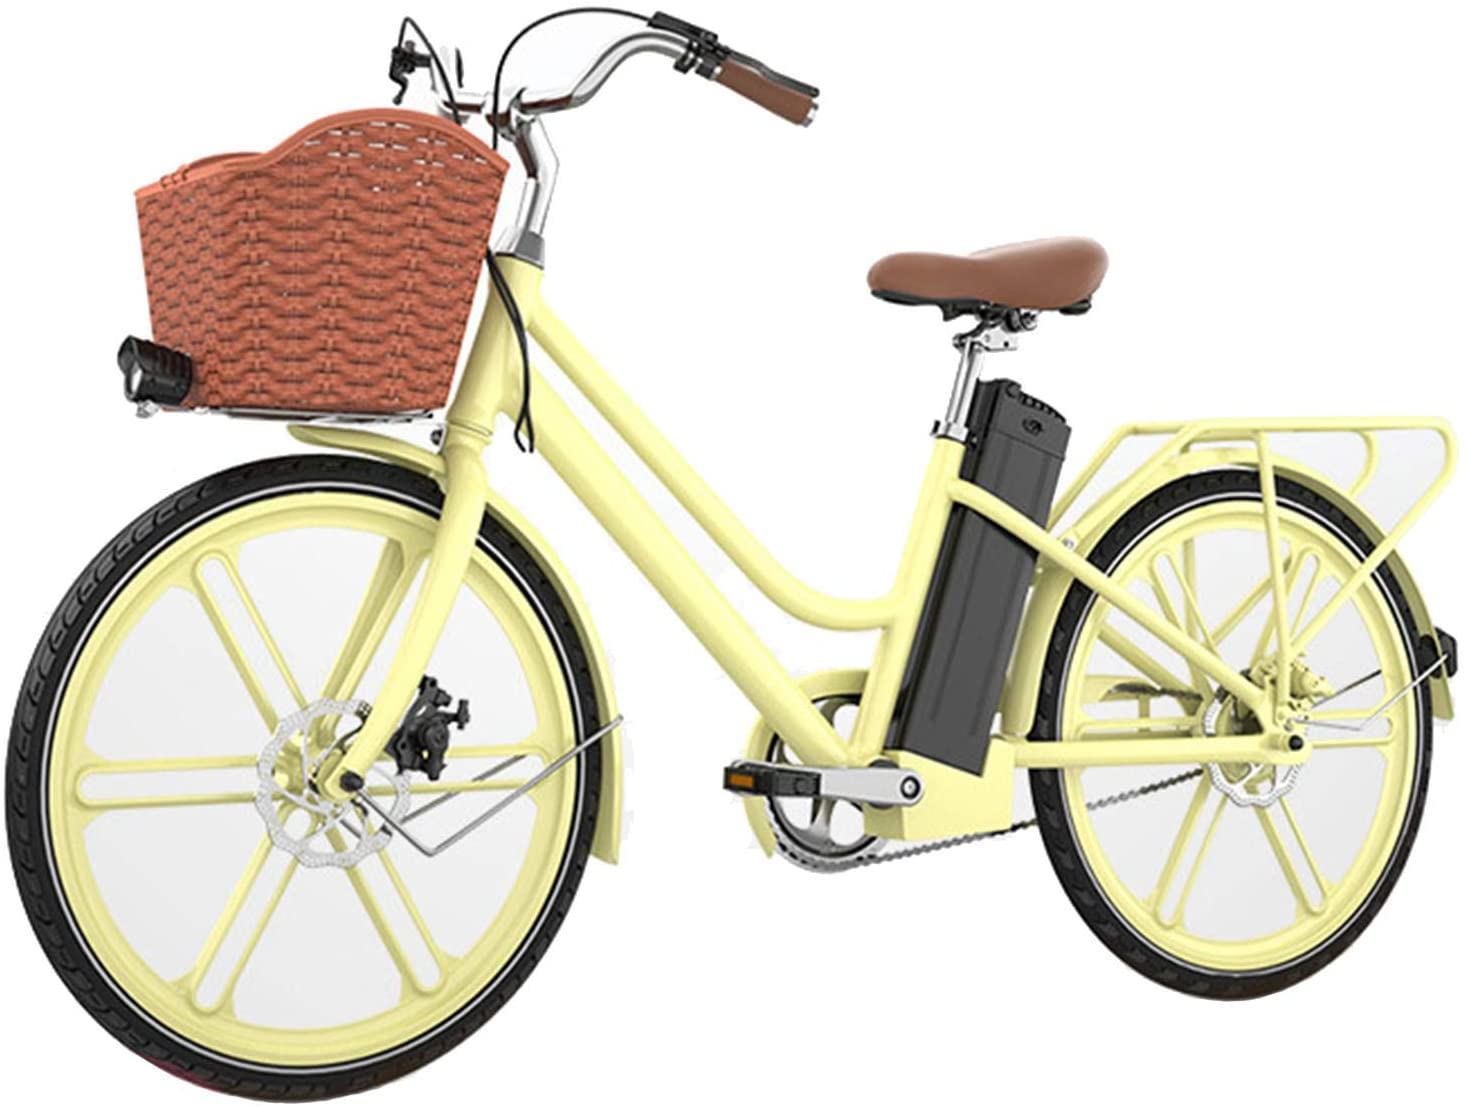 HWOEK 26'' Electric Bike for Adult, Lightweight and Stylish Lady E-Bike 250W 36V 10AH Large Capacity Lithium-Ion Battery with LCD Display and Dual Disc Brakes